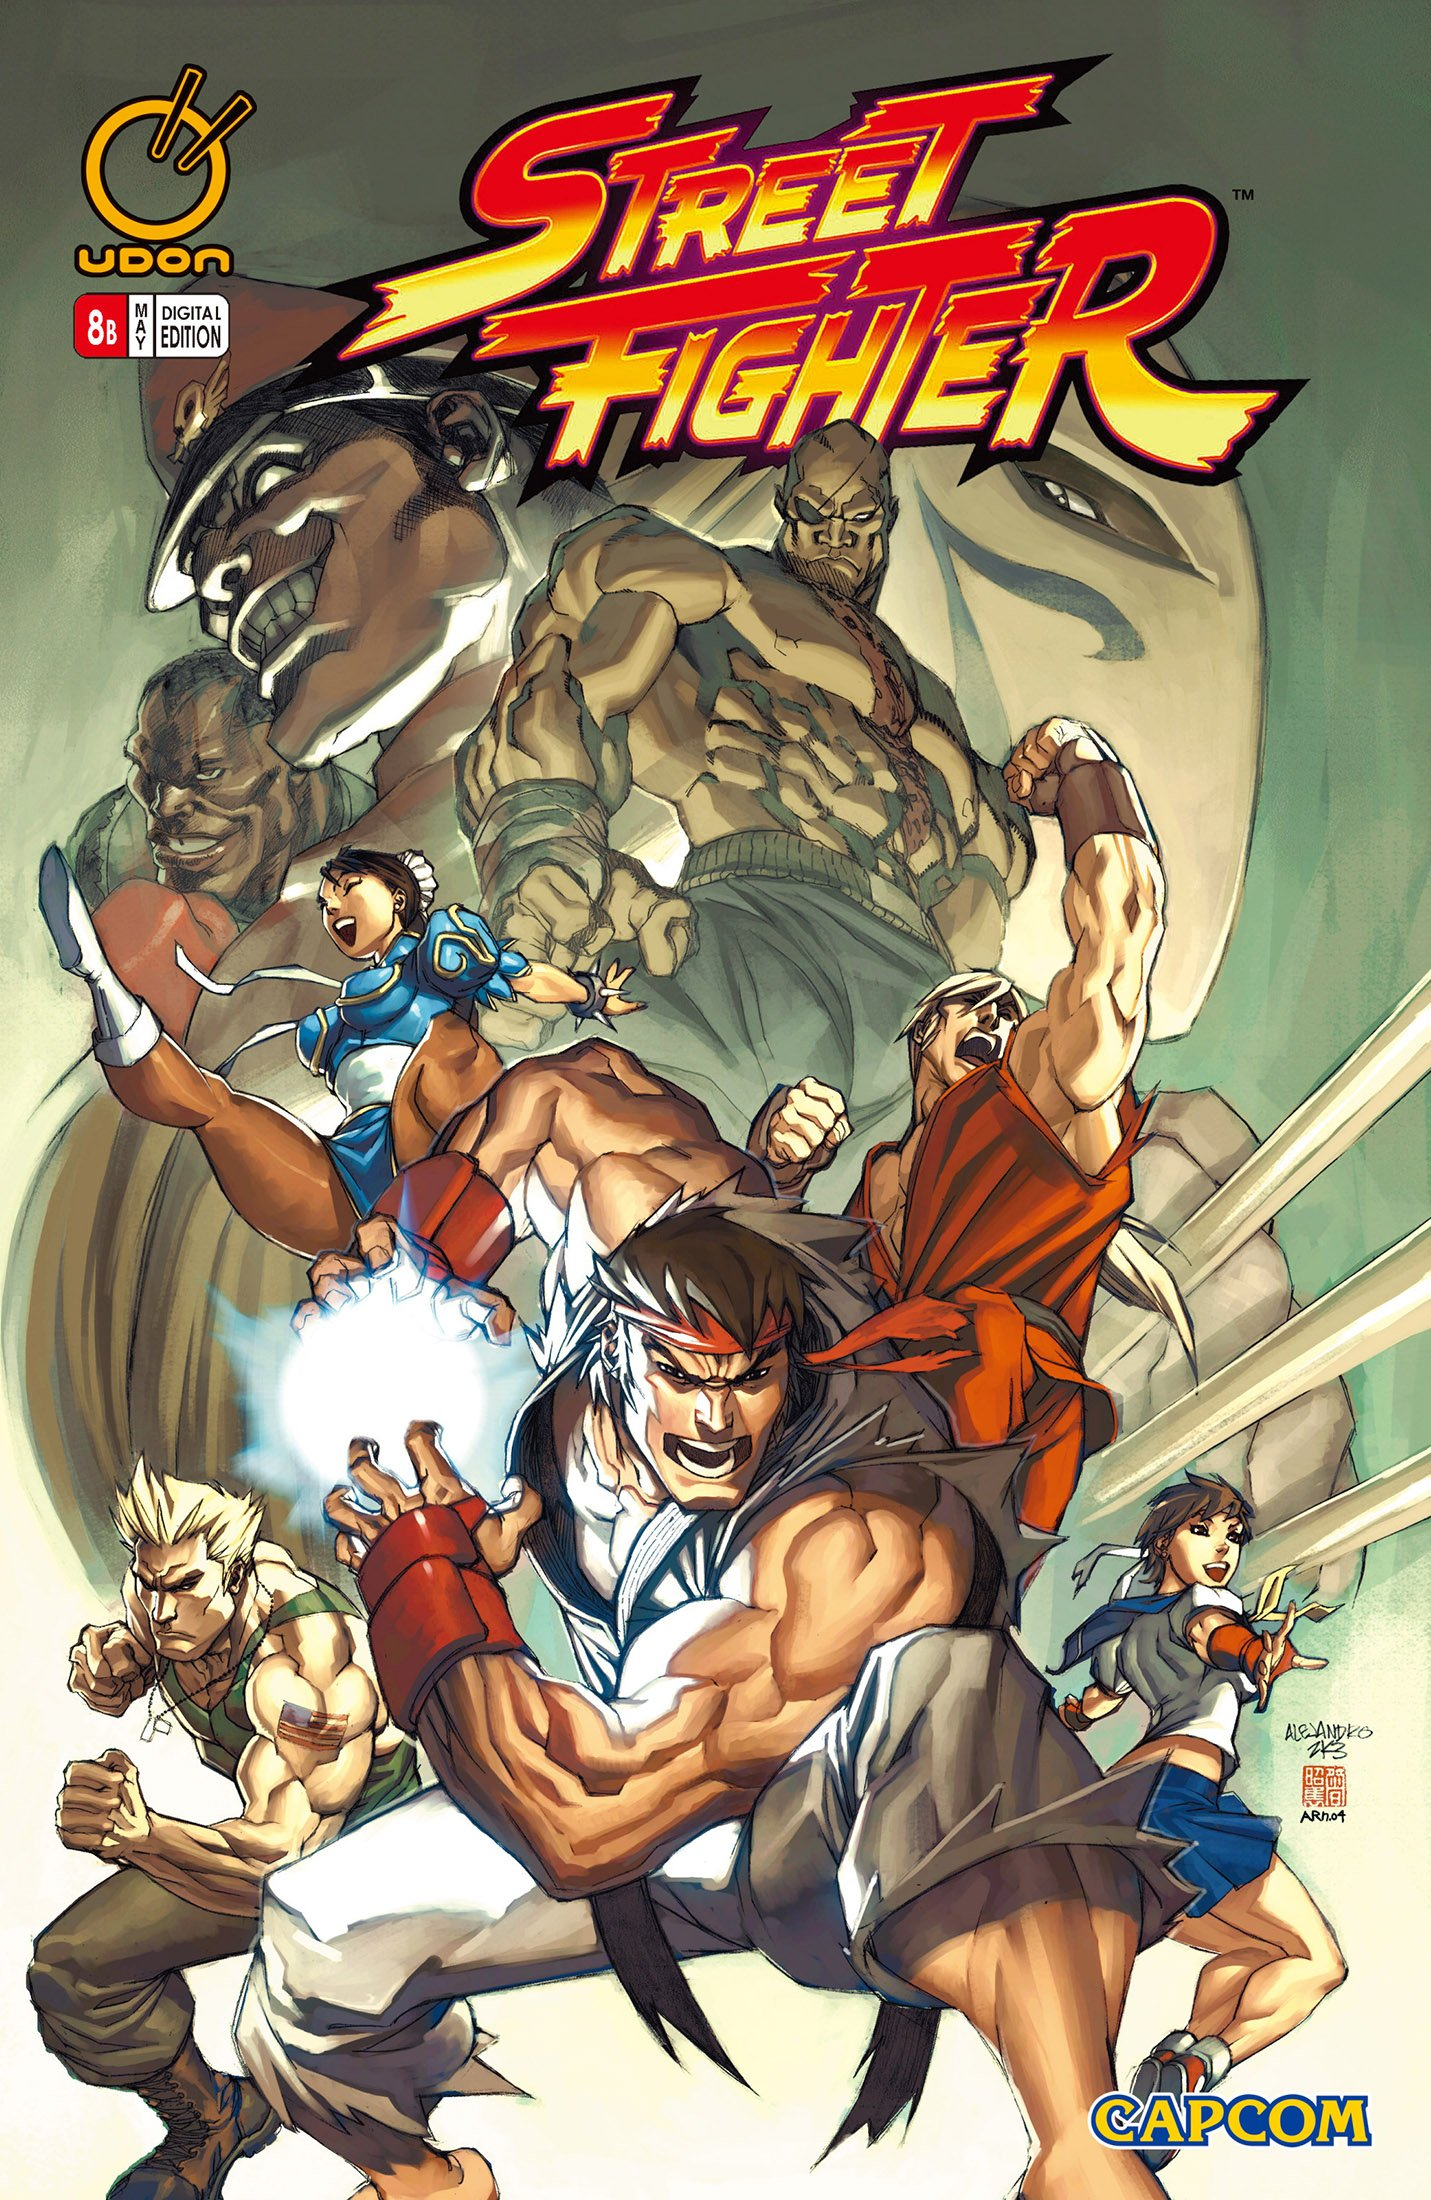 Street Fighter Vol.1 008 (May 2004) (cover b)